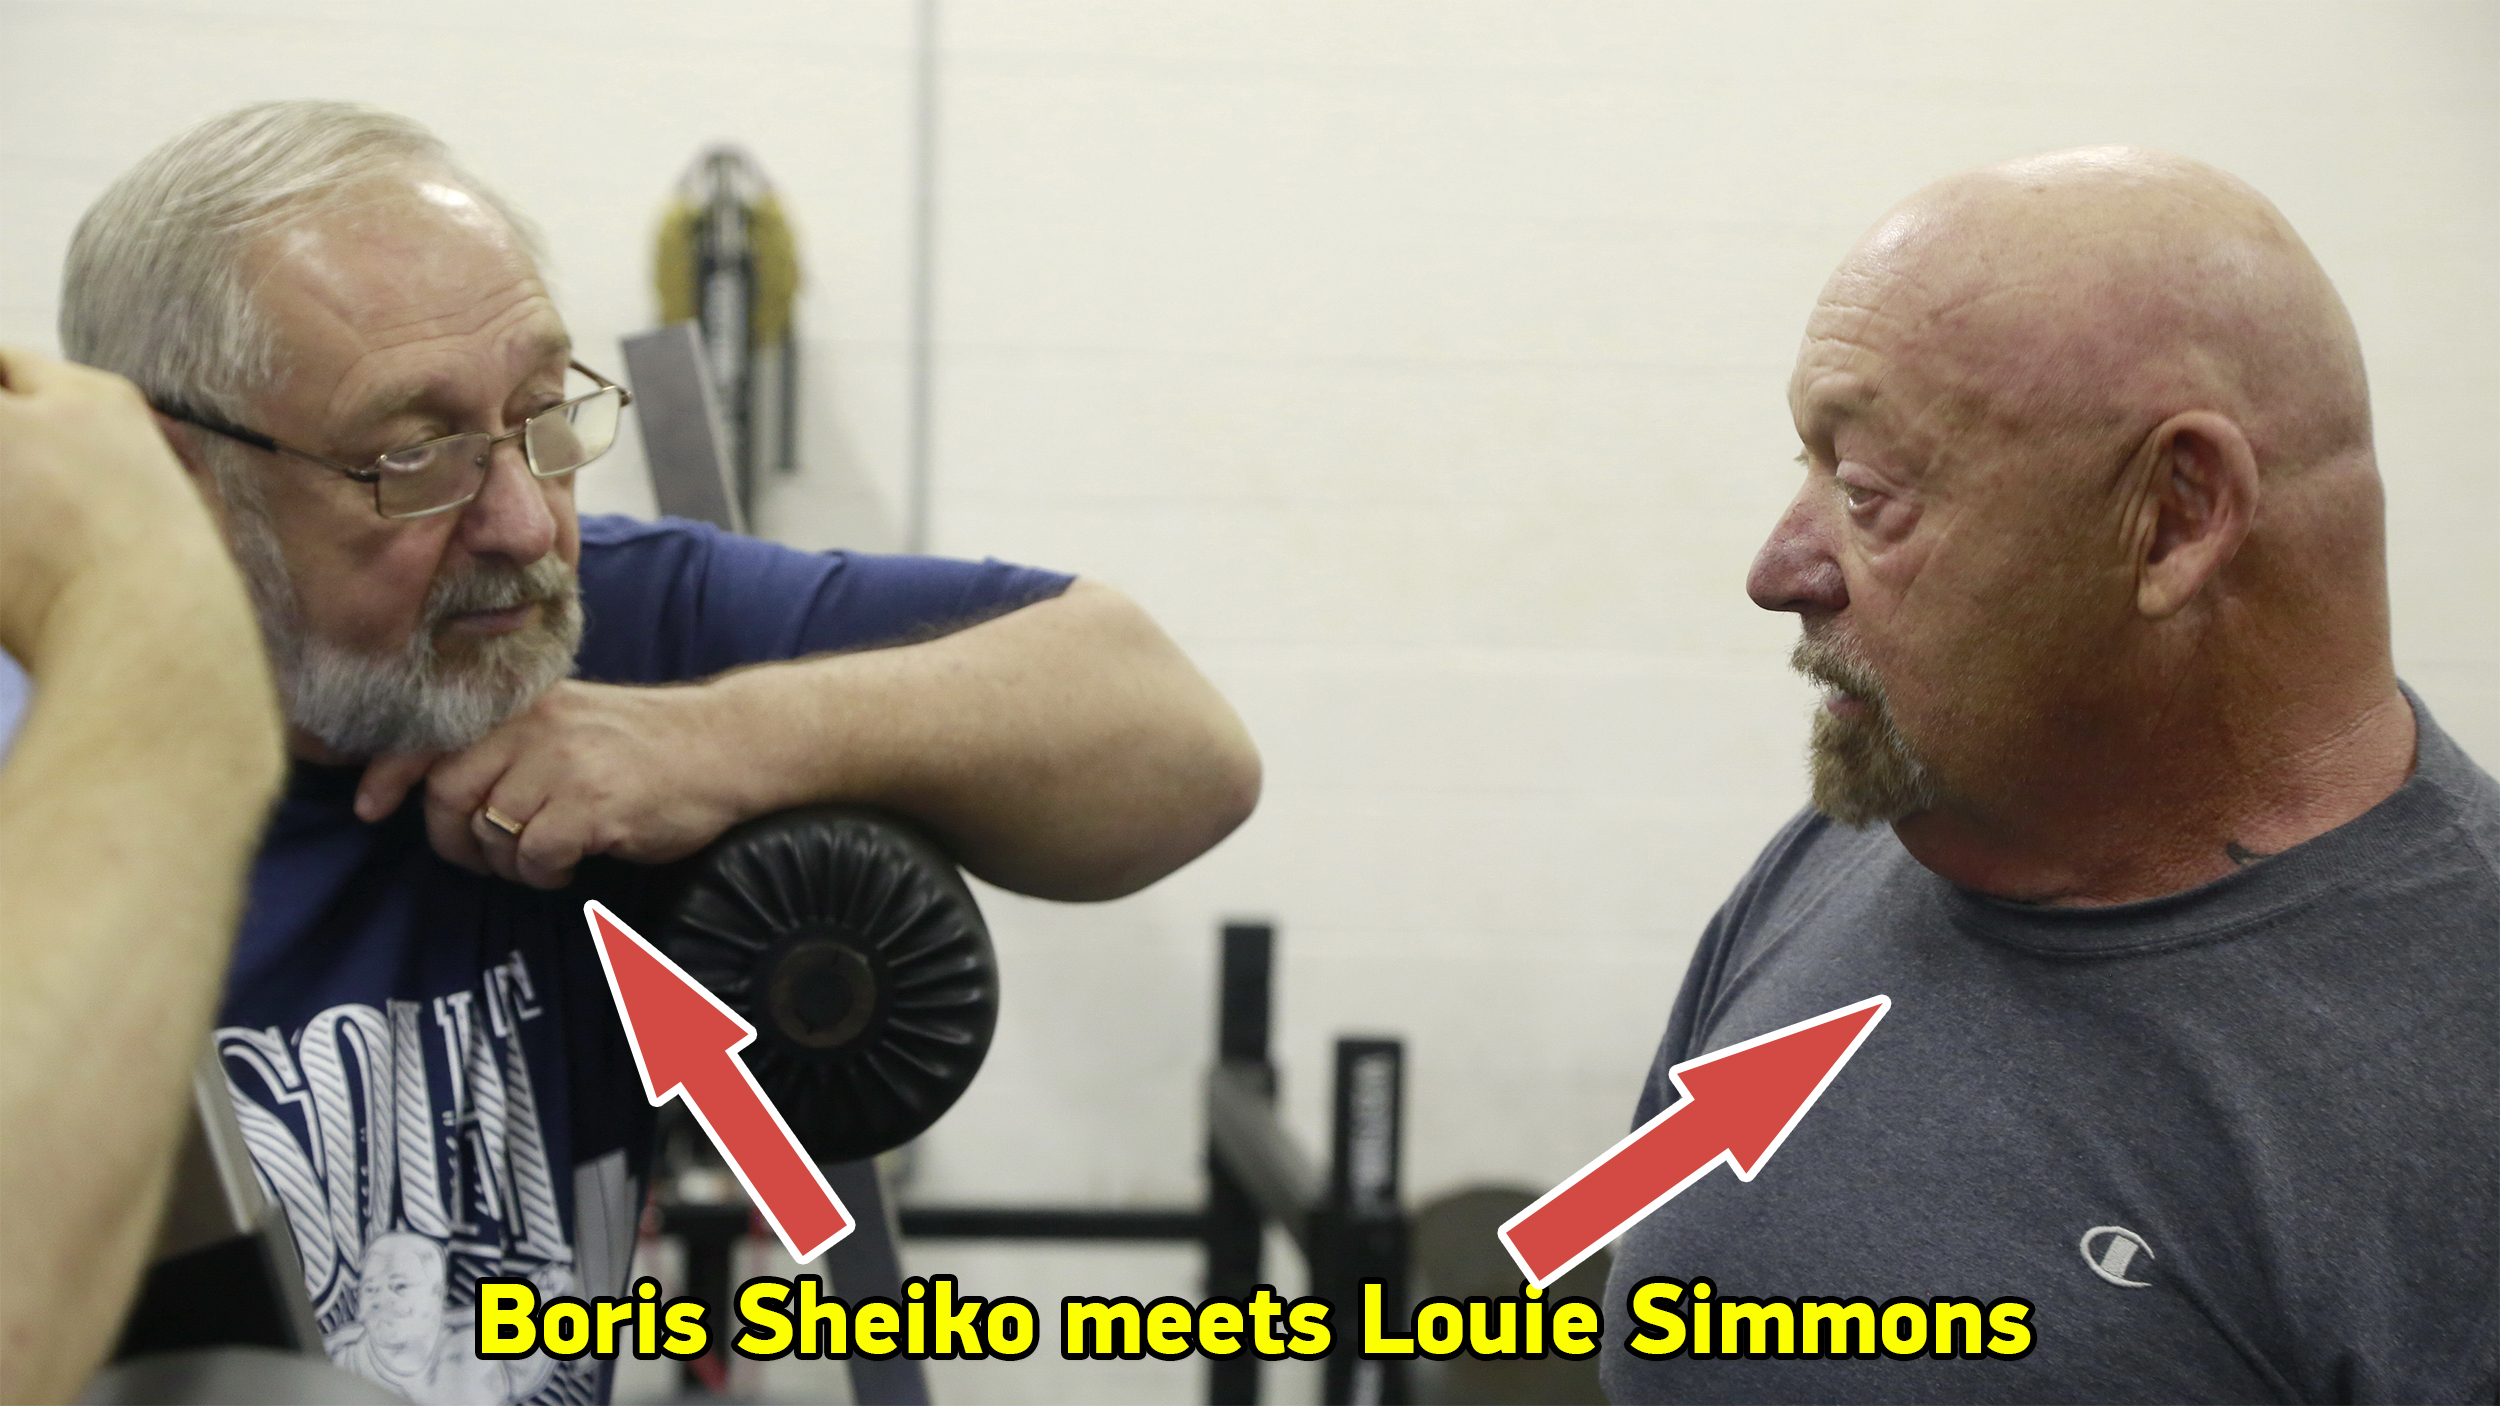 Boris Sheiko meets Louie Simmons, August 17, 2016. Columbus, OH (video)